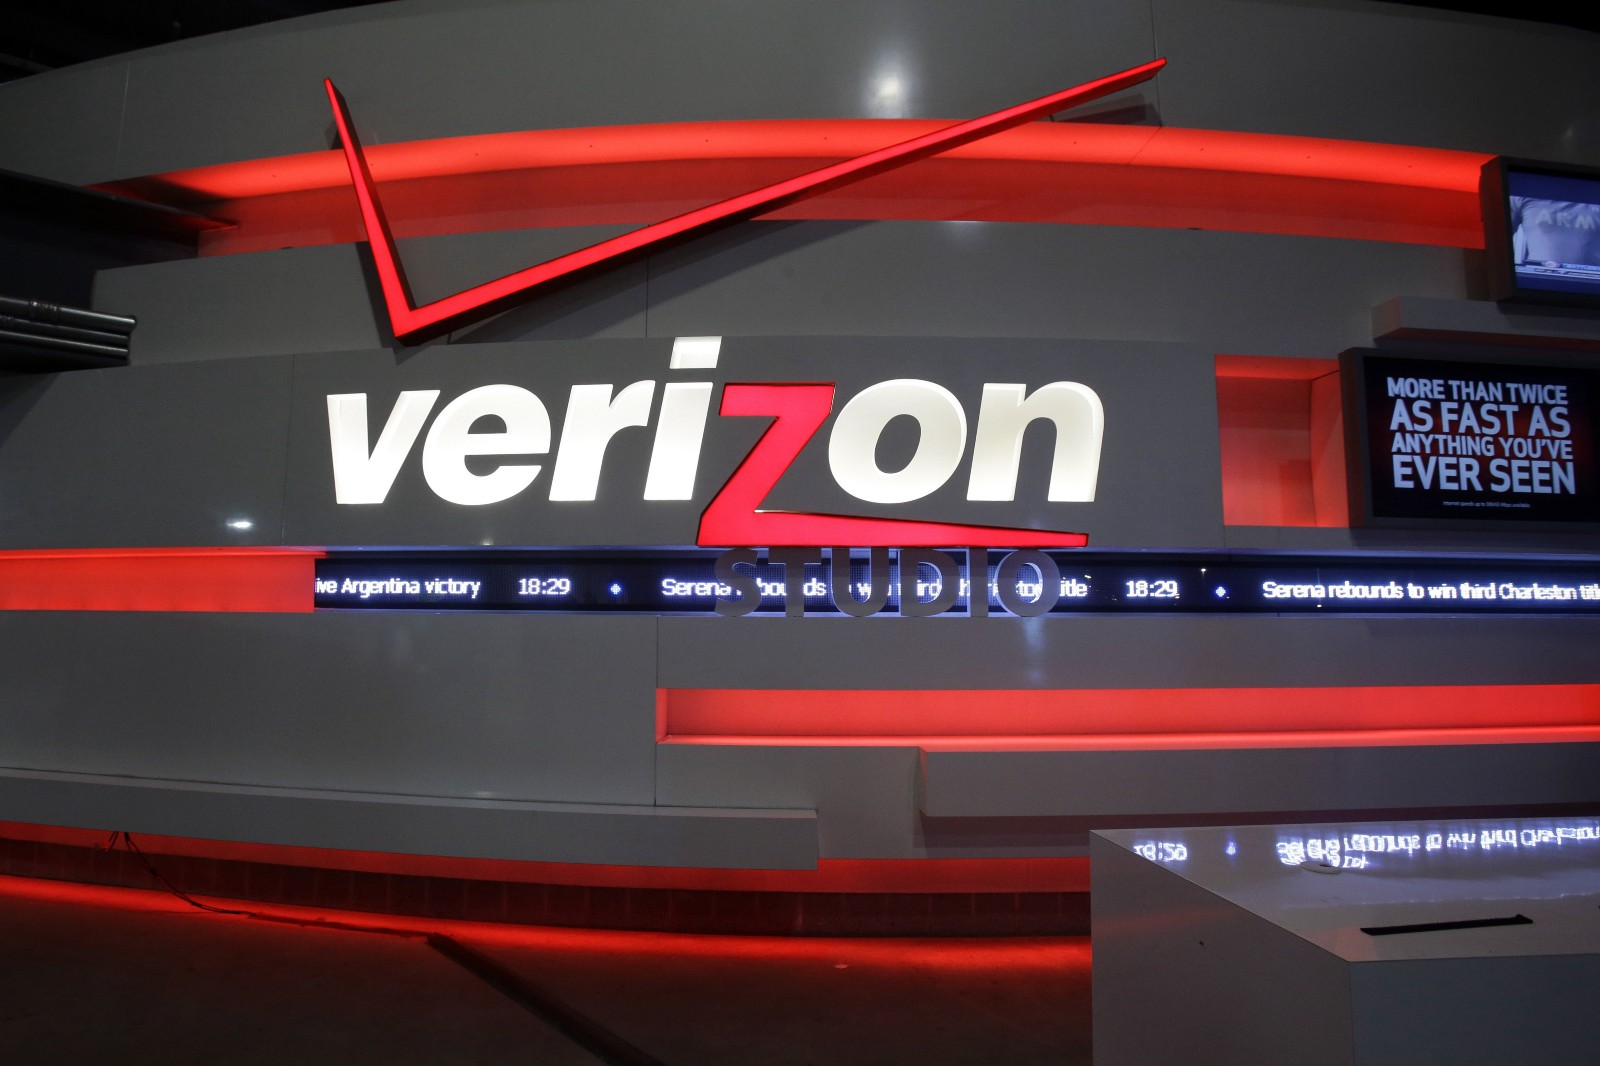 Verizon 3rd Party Vendor Exposes Millions of Customers' Data